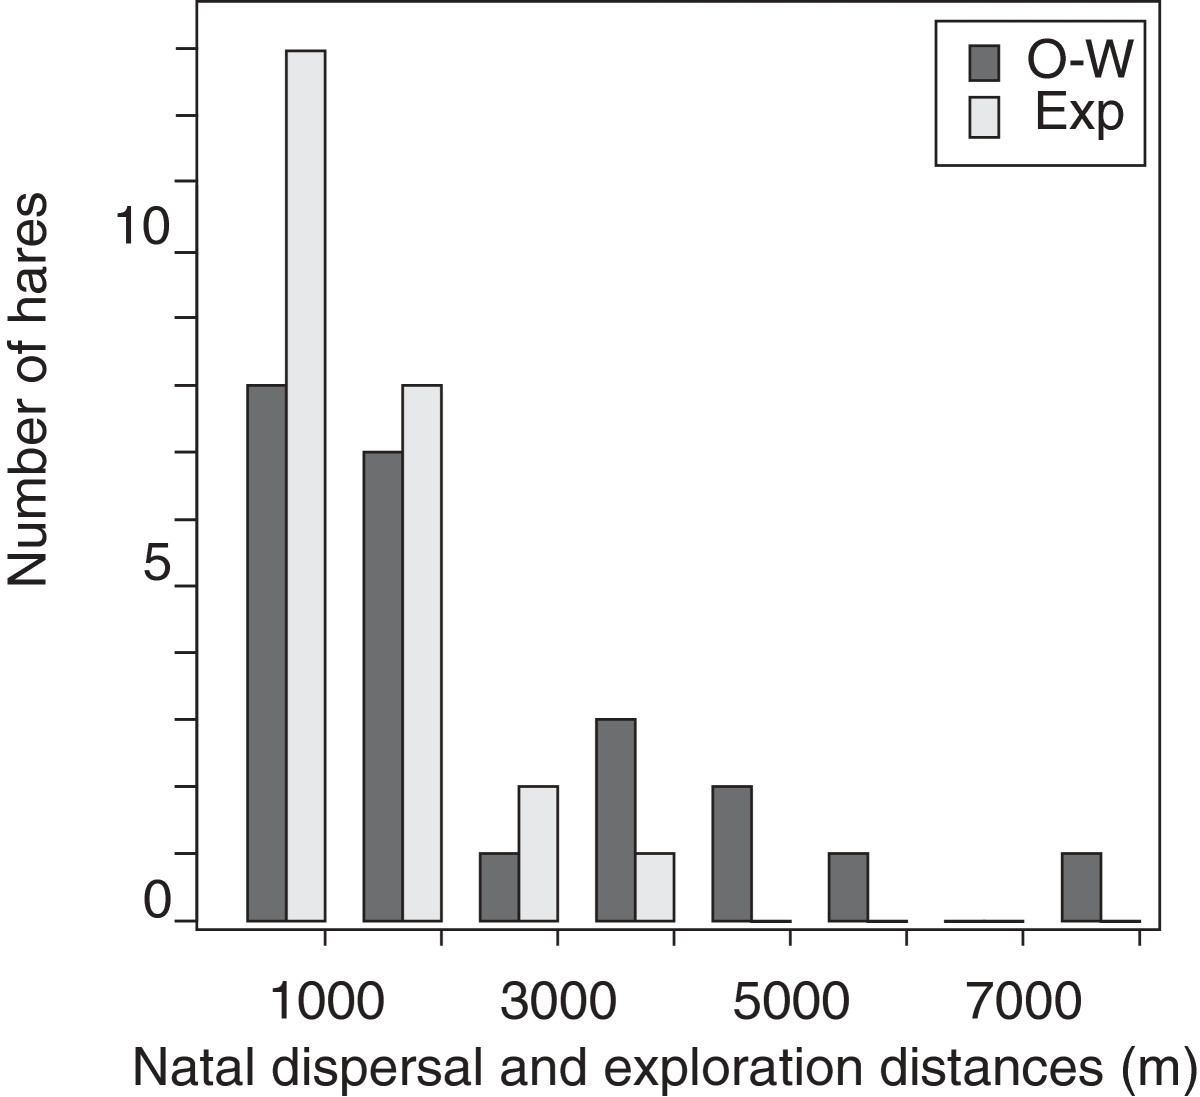 http://static-content.springer.com/image/art%3A10.1186%2F1472-6785-14-6/MediaObjects/12898_2013_Article_271_Fig2_HTML.jpg